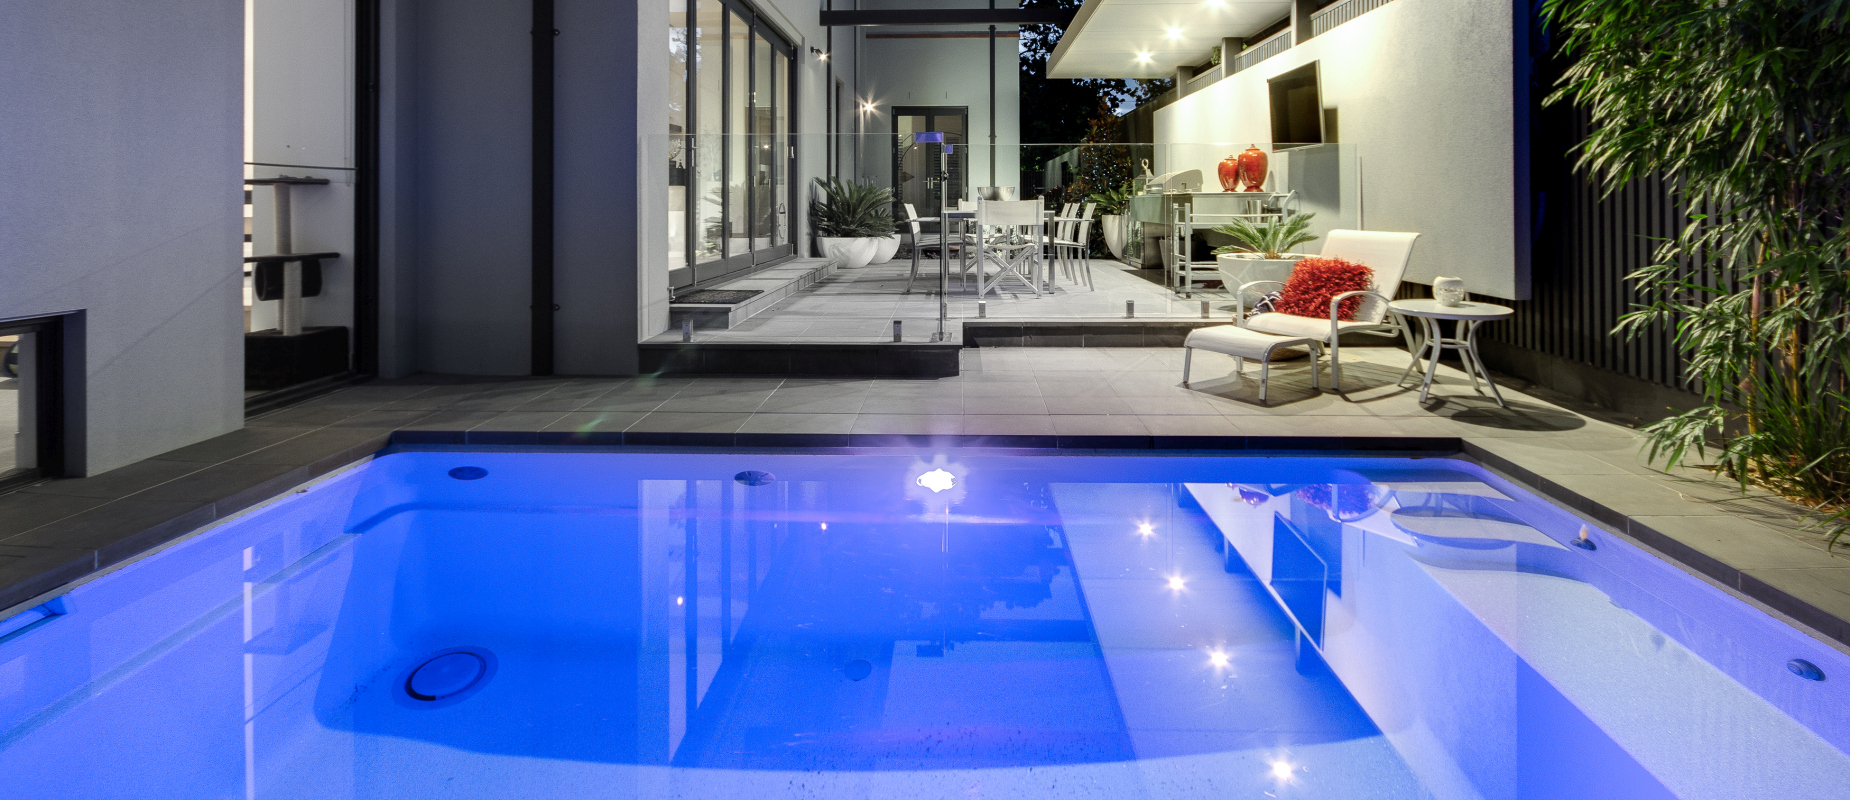 Plunge Pools Small Courtyard Swimming Pools Compass Pools